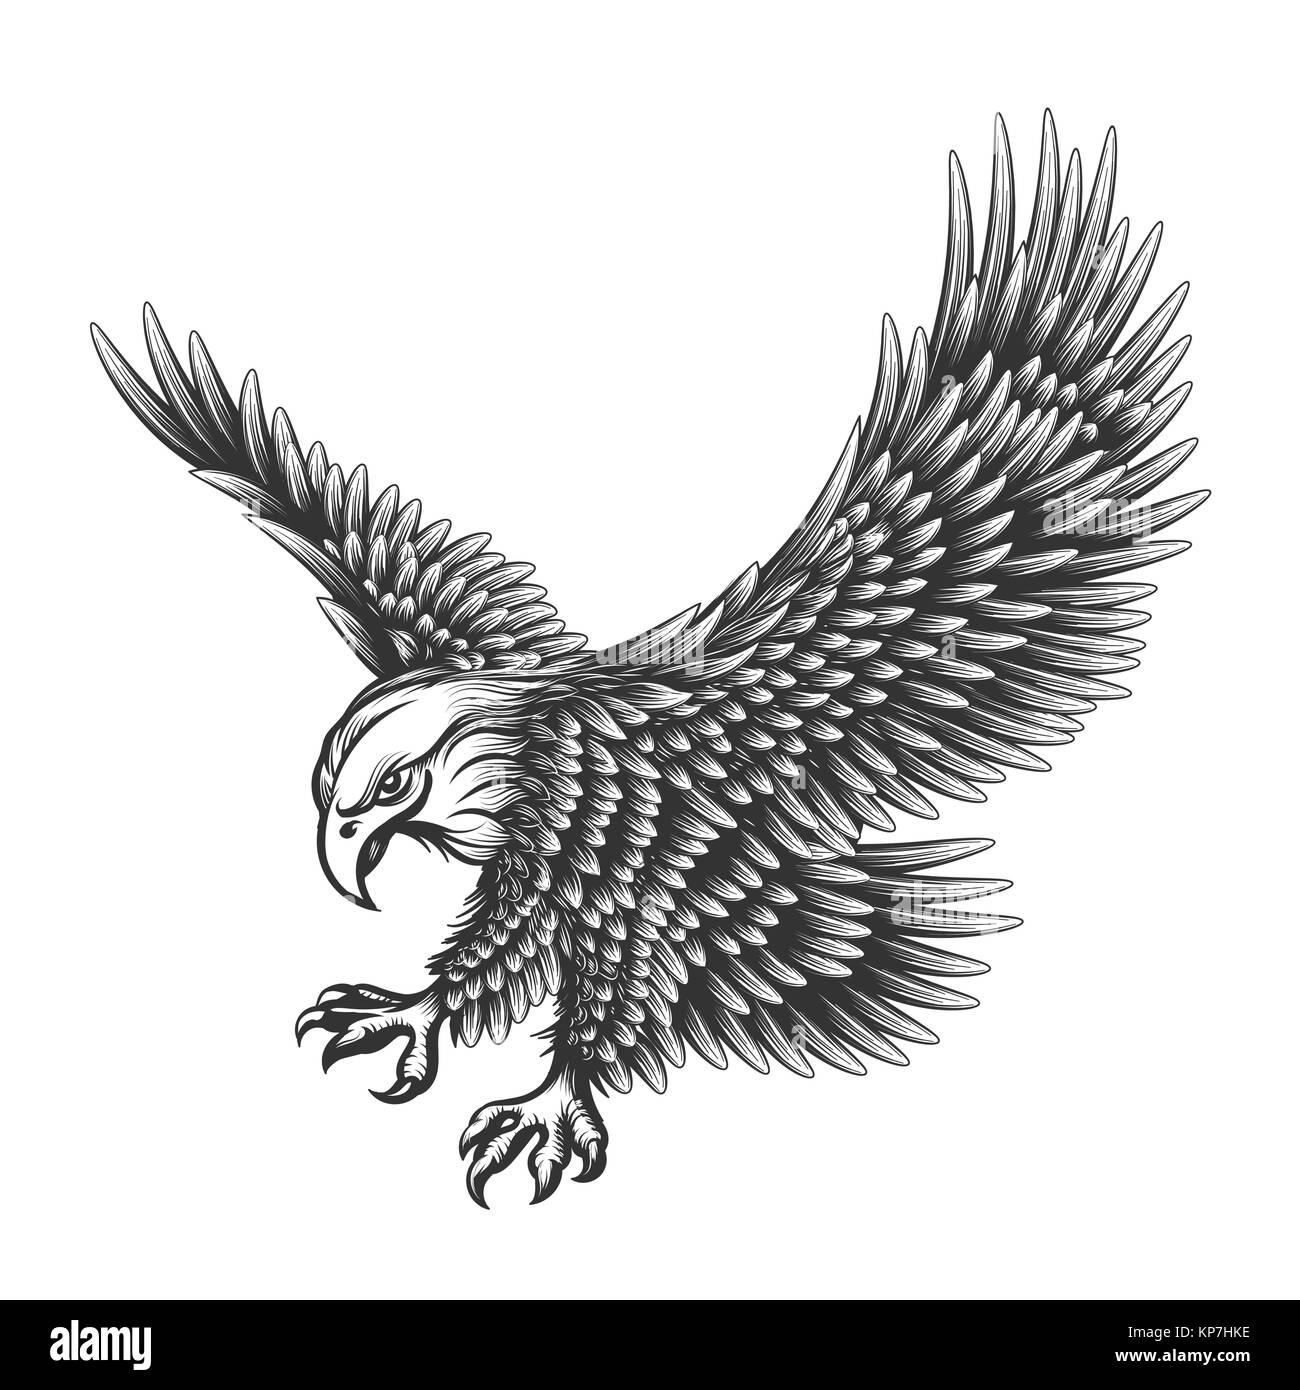 Flying Eagle Drawings Black And White Photography